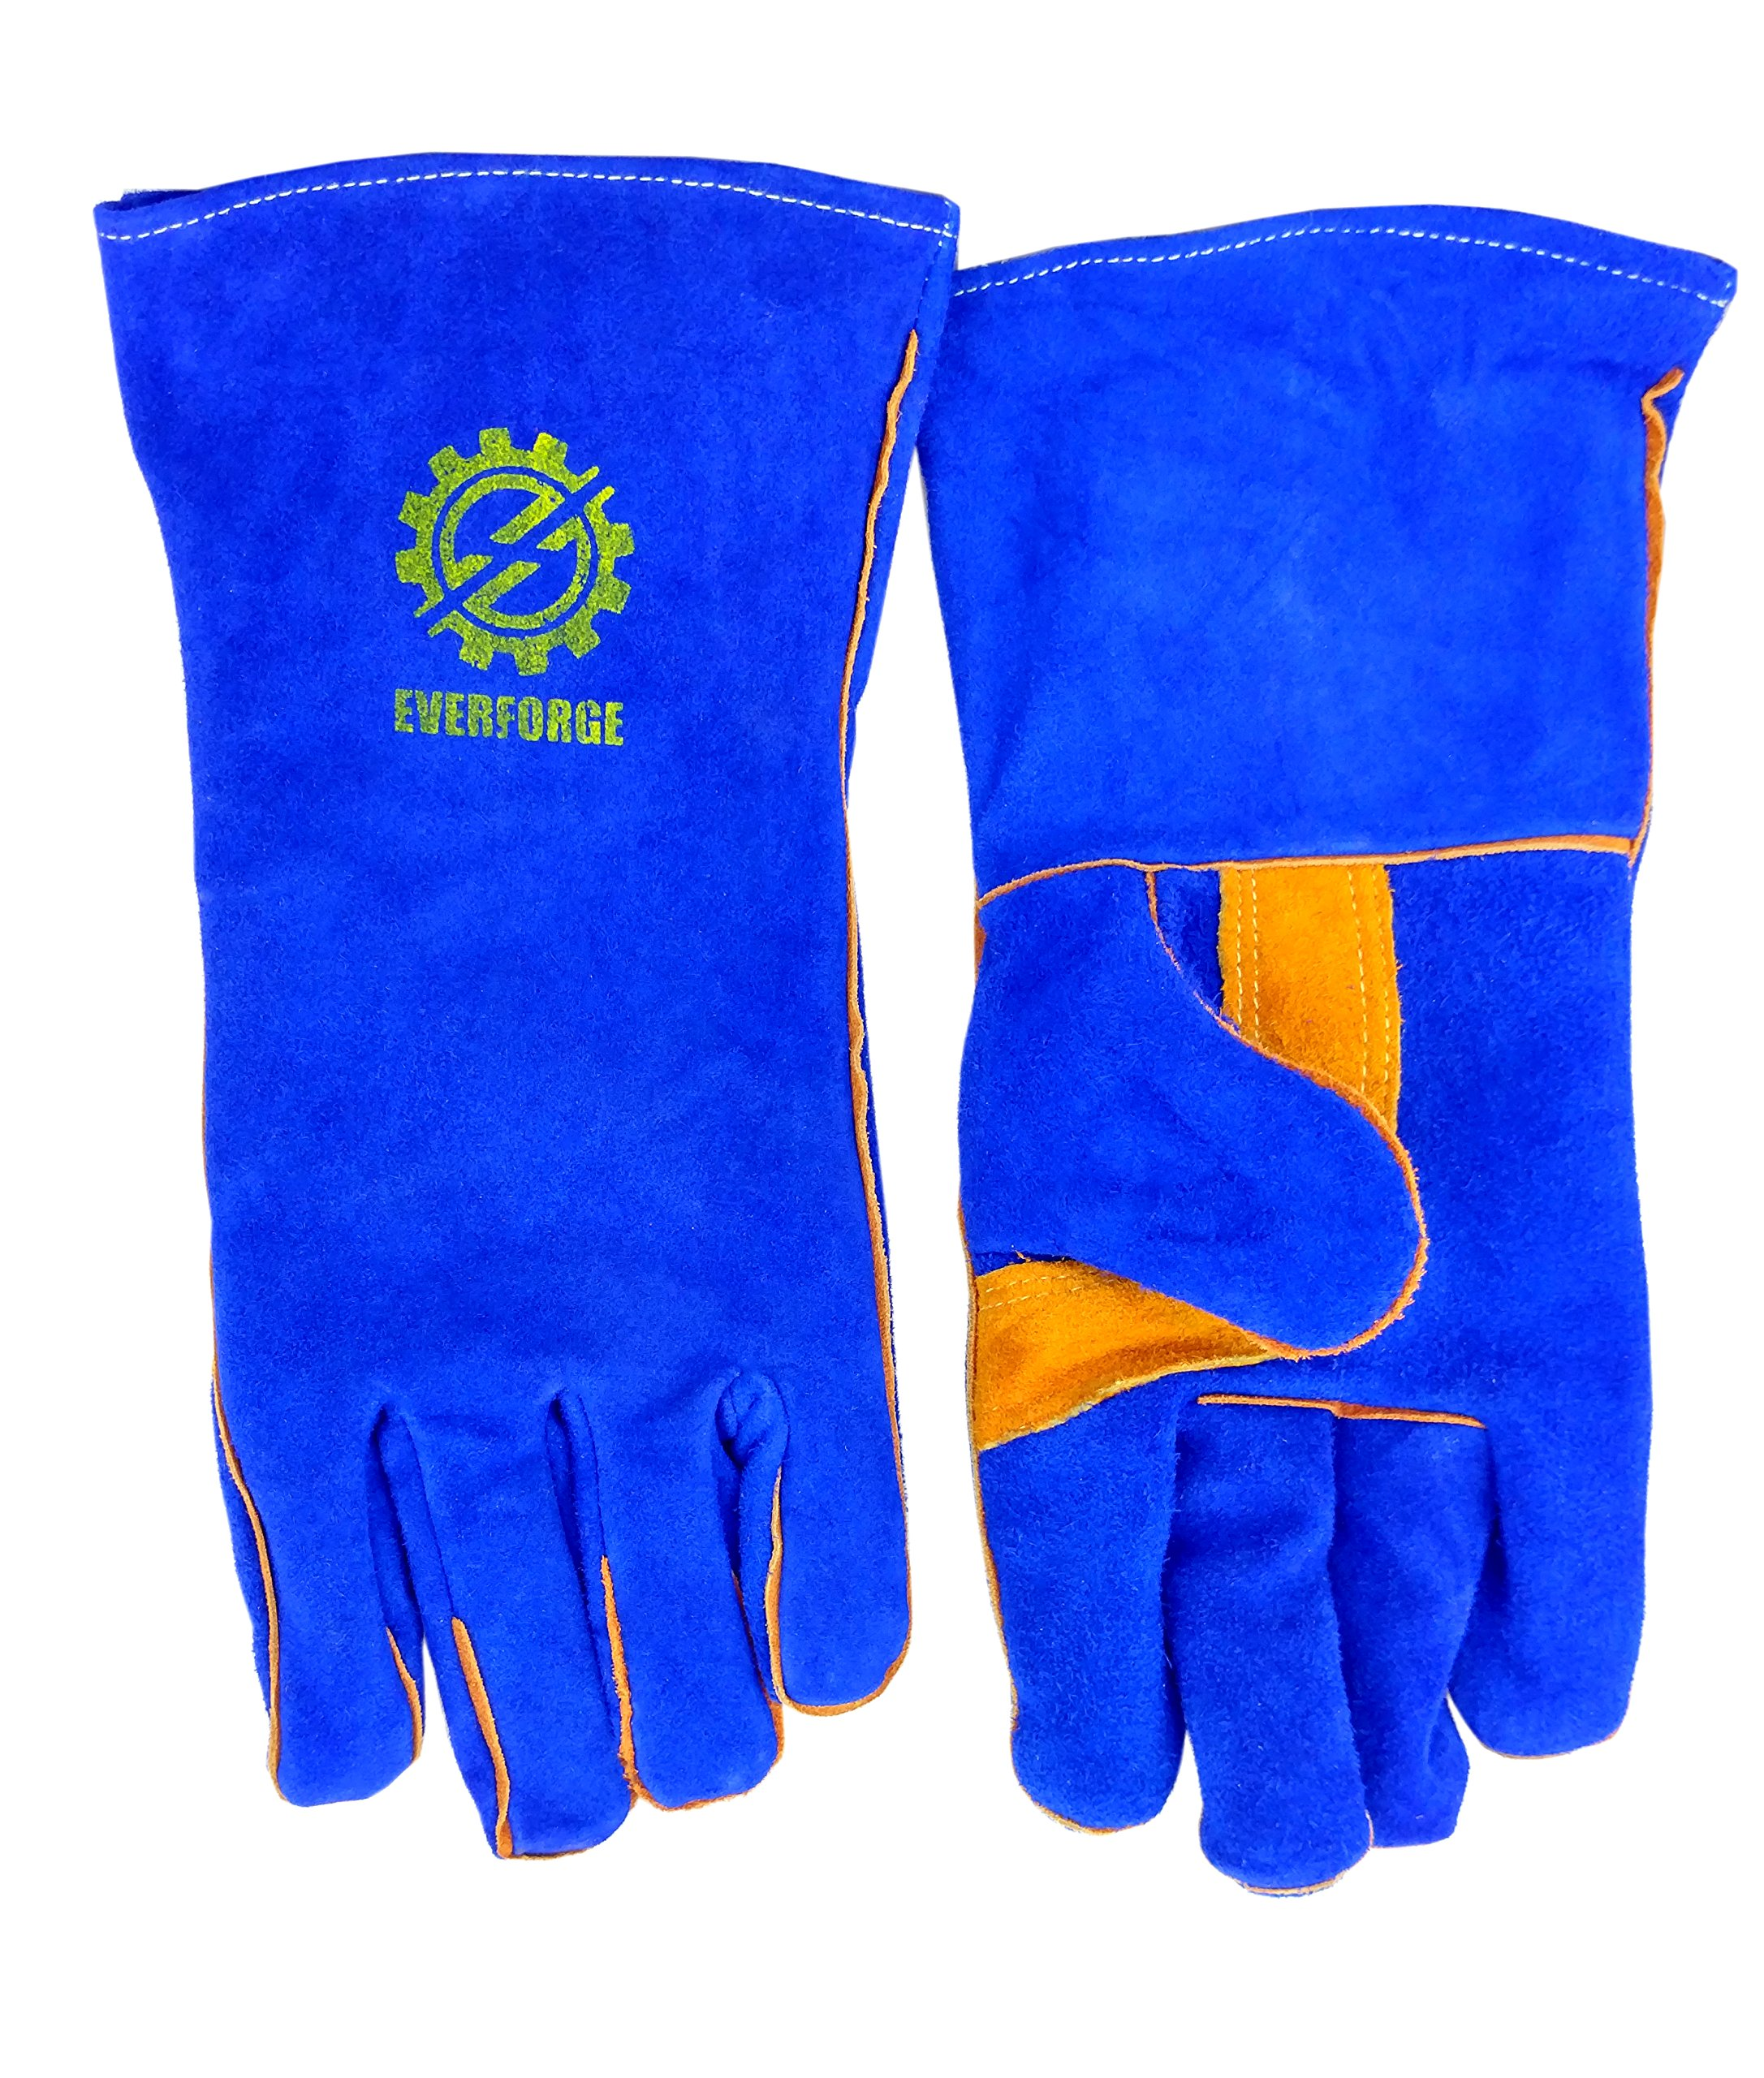 Welding Gloves 14'' for Arc, MIG and TIG Welders with 1 Steel Welding Rod - Heavy Duty Reinforced Kevlar Stitching, Extreme Heat Resistant Double Insulation, One Size - S, M, L, XL, XXL- Blue by Everforge (Image #4)